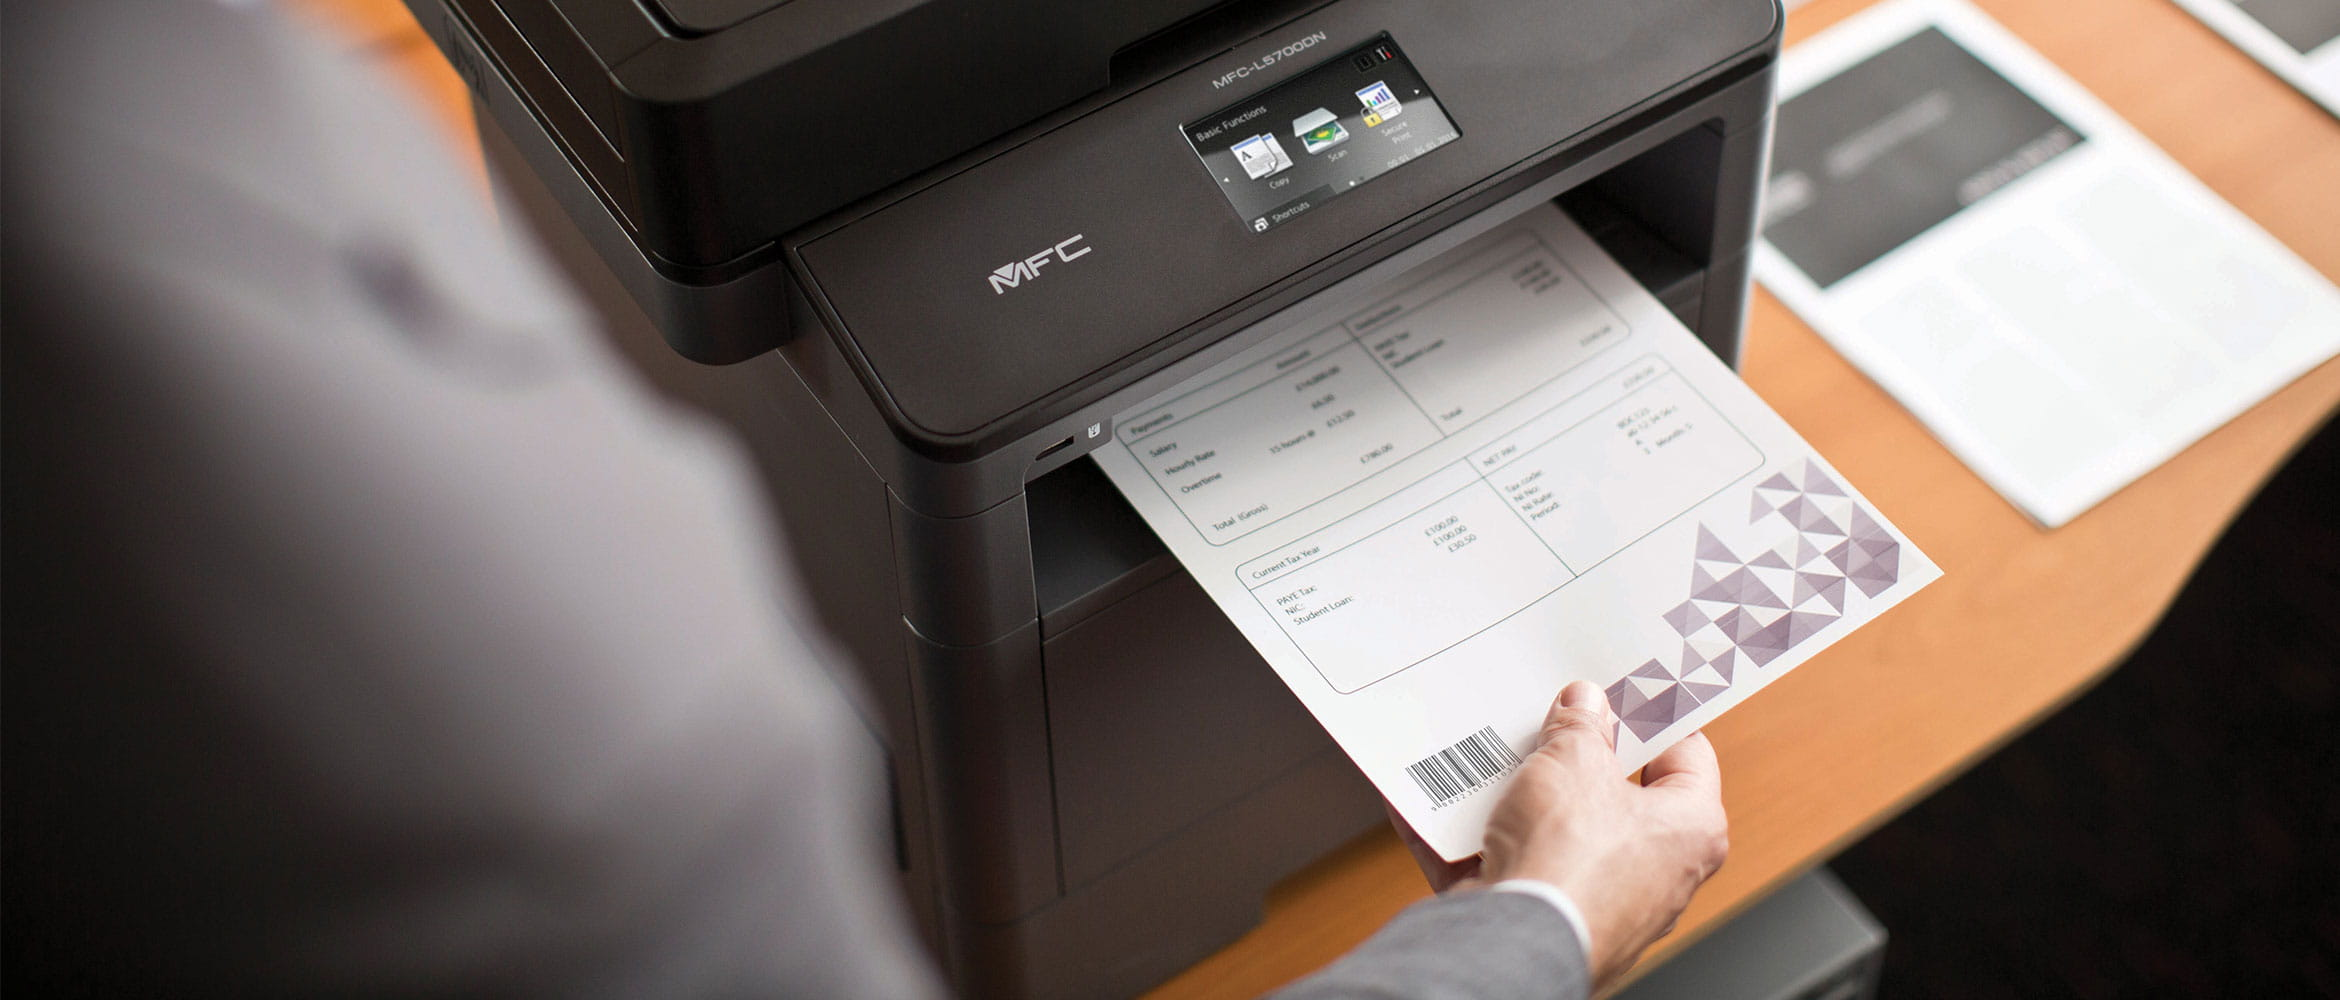 MFC-L5700DN Mono laser printer printing document with barcode